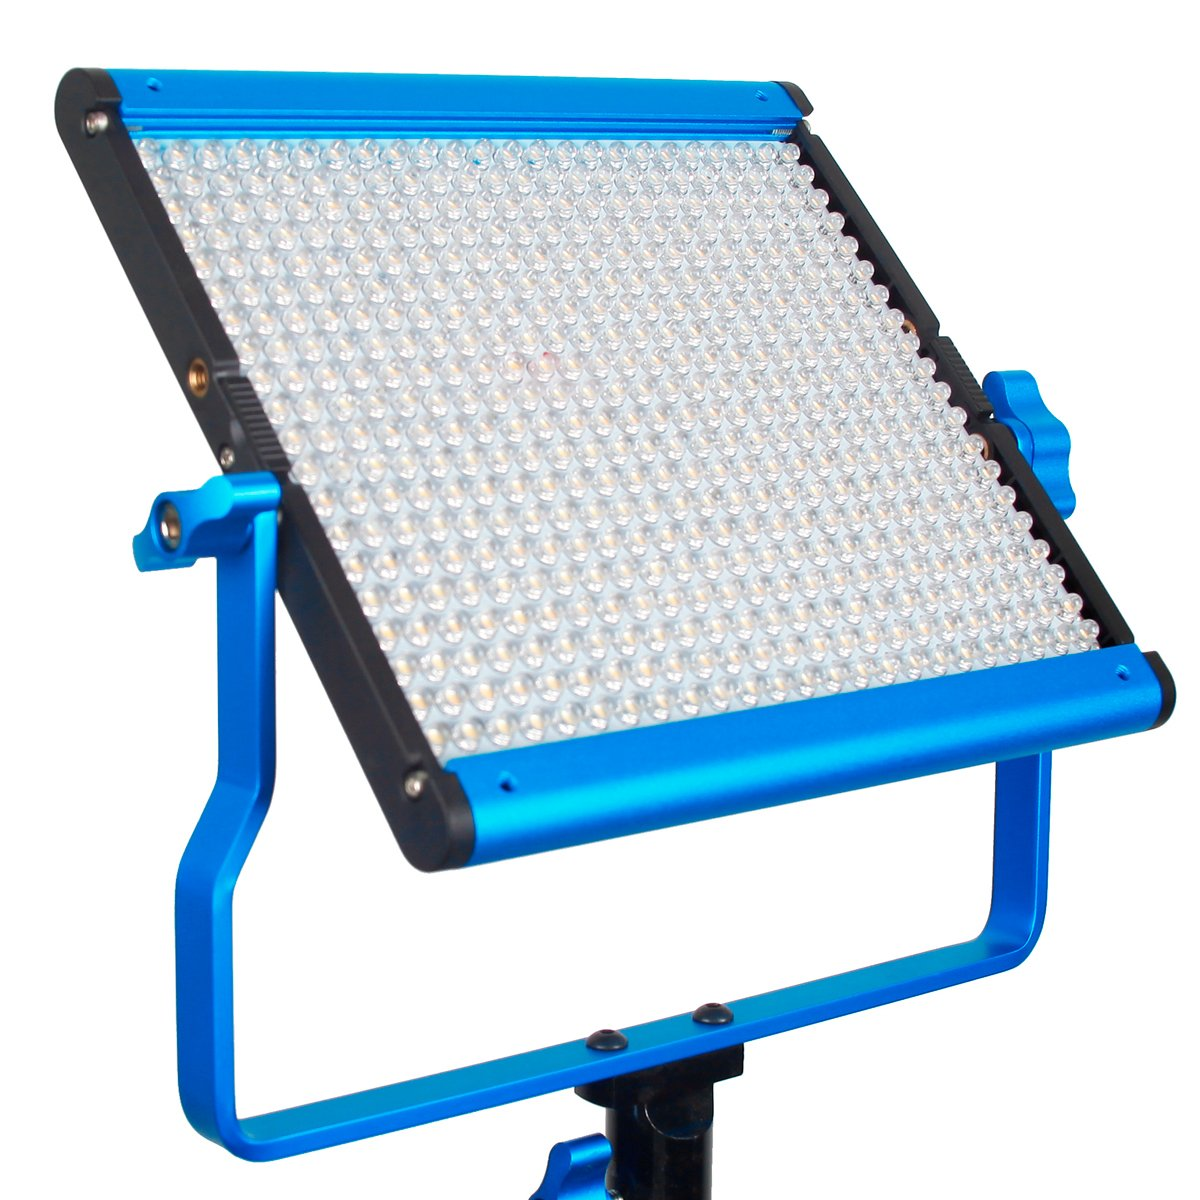 Dracast DRSPPL500DN S Series Plus Daylight LED500 Panel with 2 NPF Battery Plates, Blue